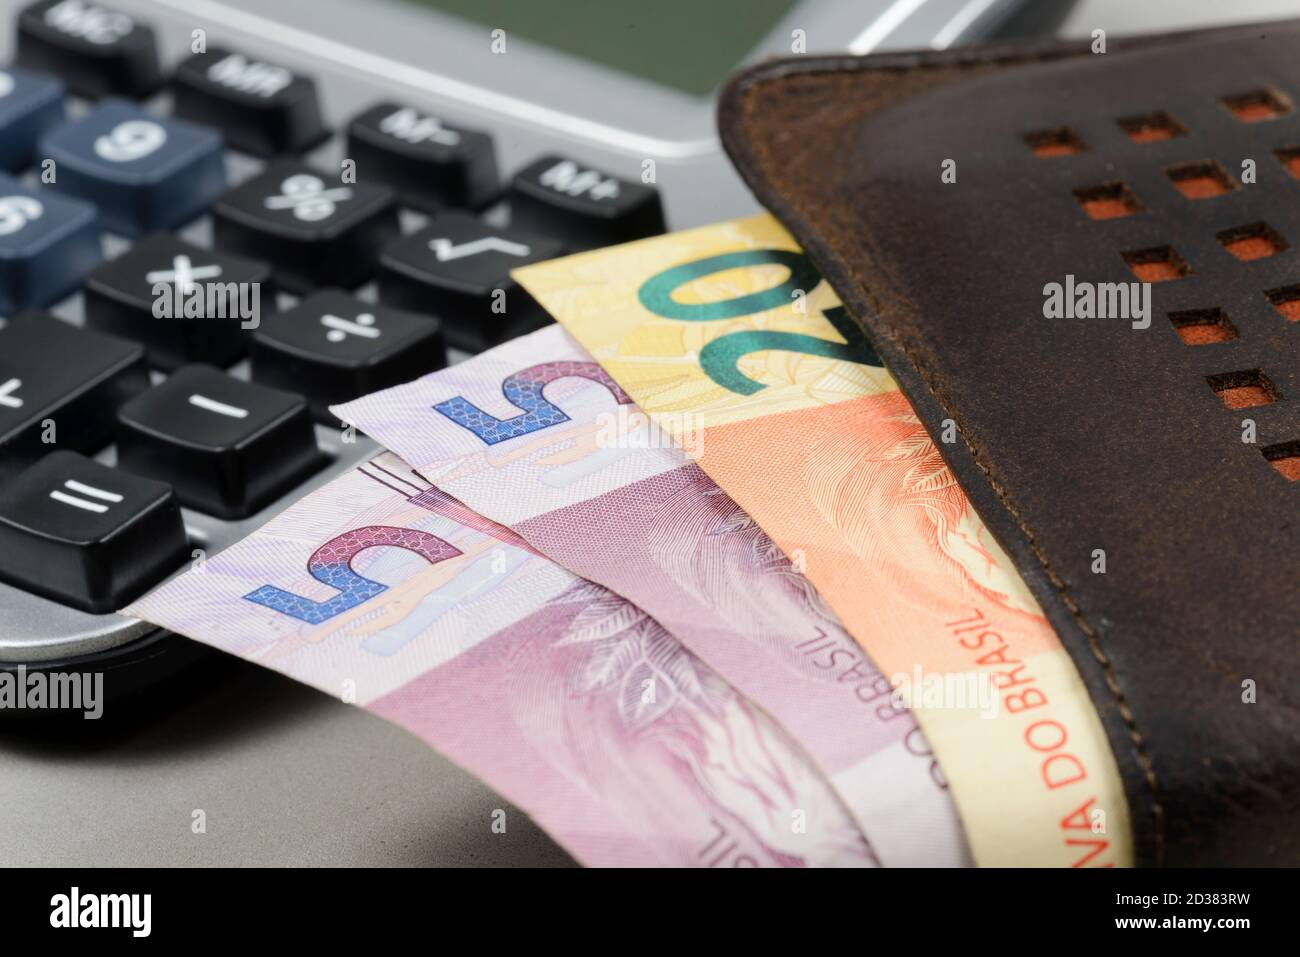 money coming out of wallet with blurred pocket calculator in the background. Stock Photo